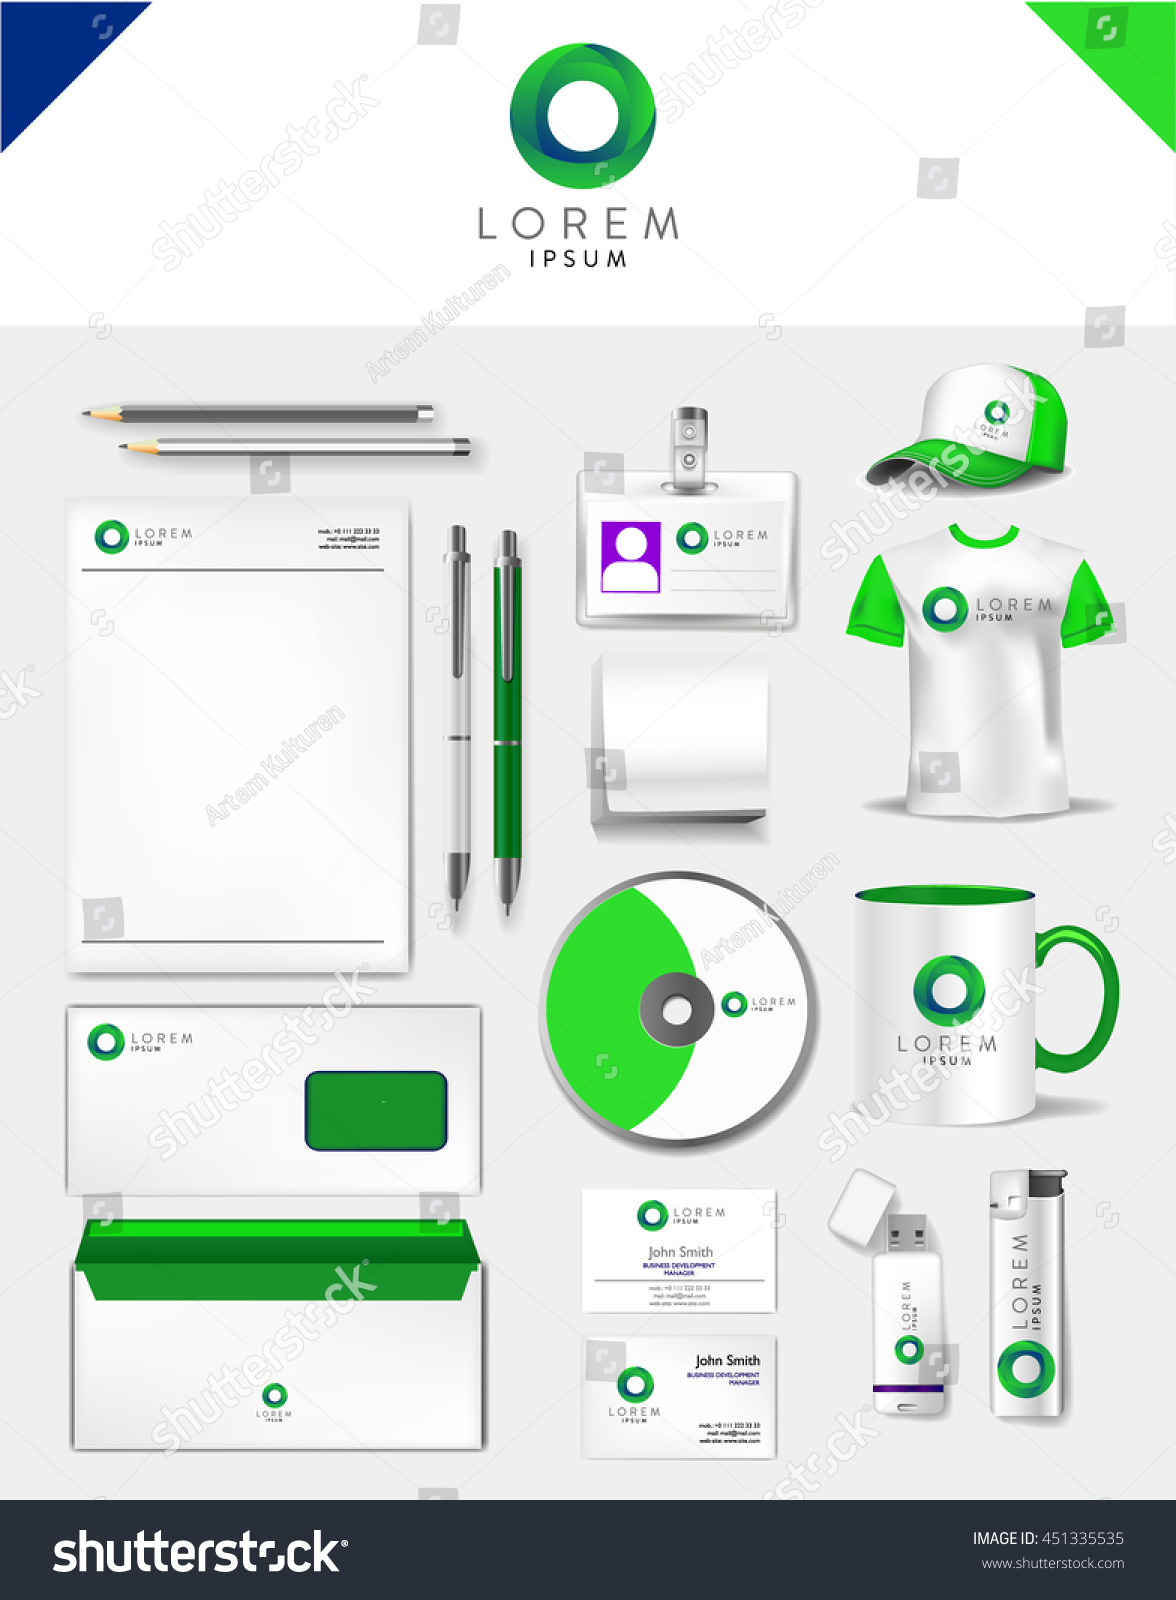 Corporate green identity template realistic cup stock vector corporate green identity template realistic cup business card letterhead envelope usb wajeb Choice Image